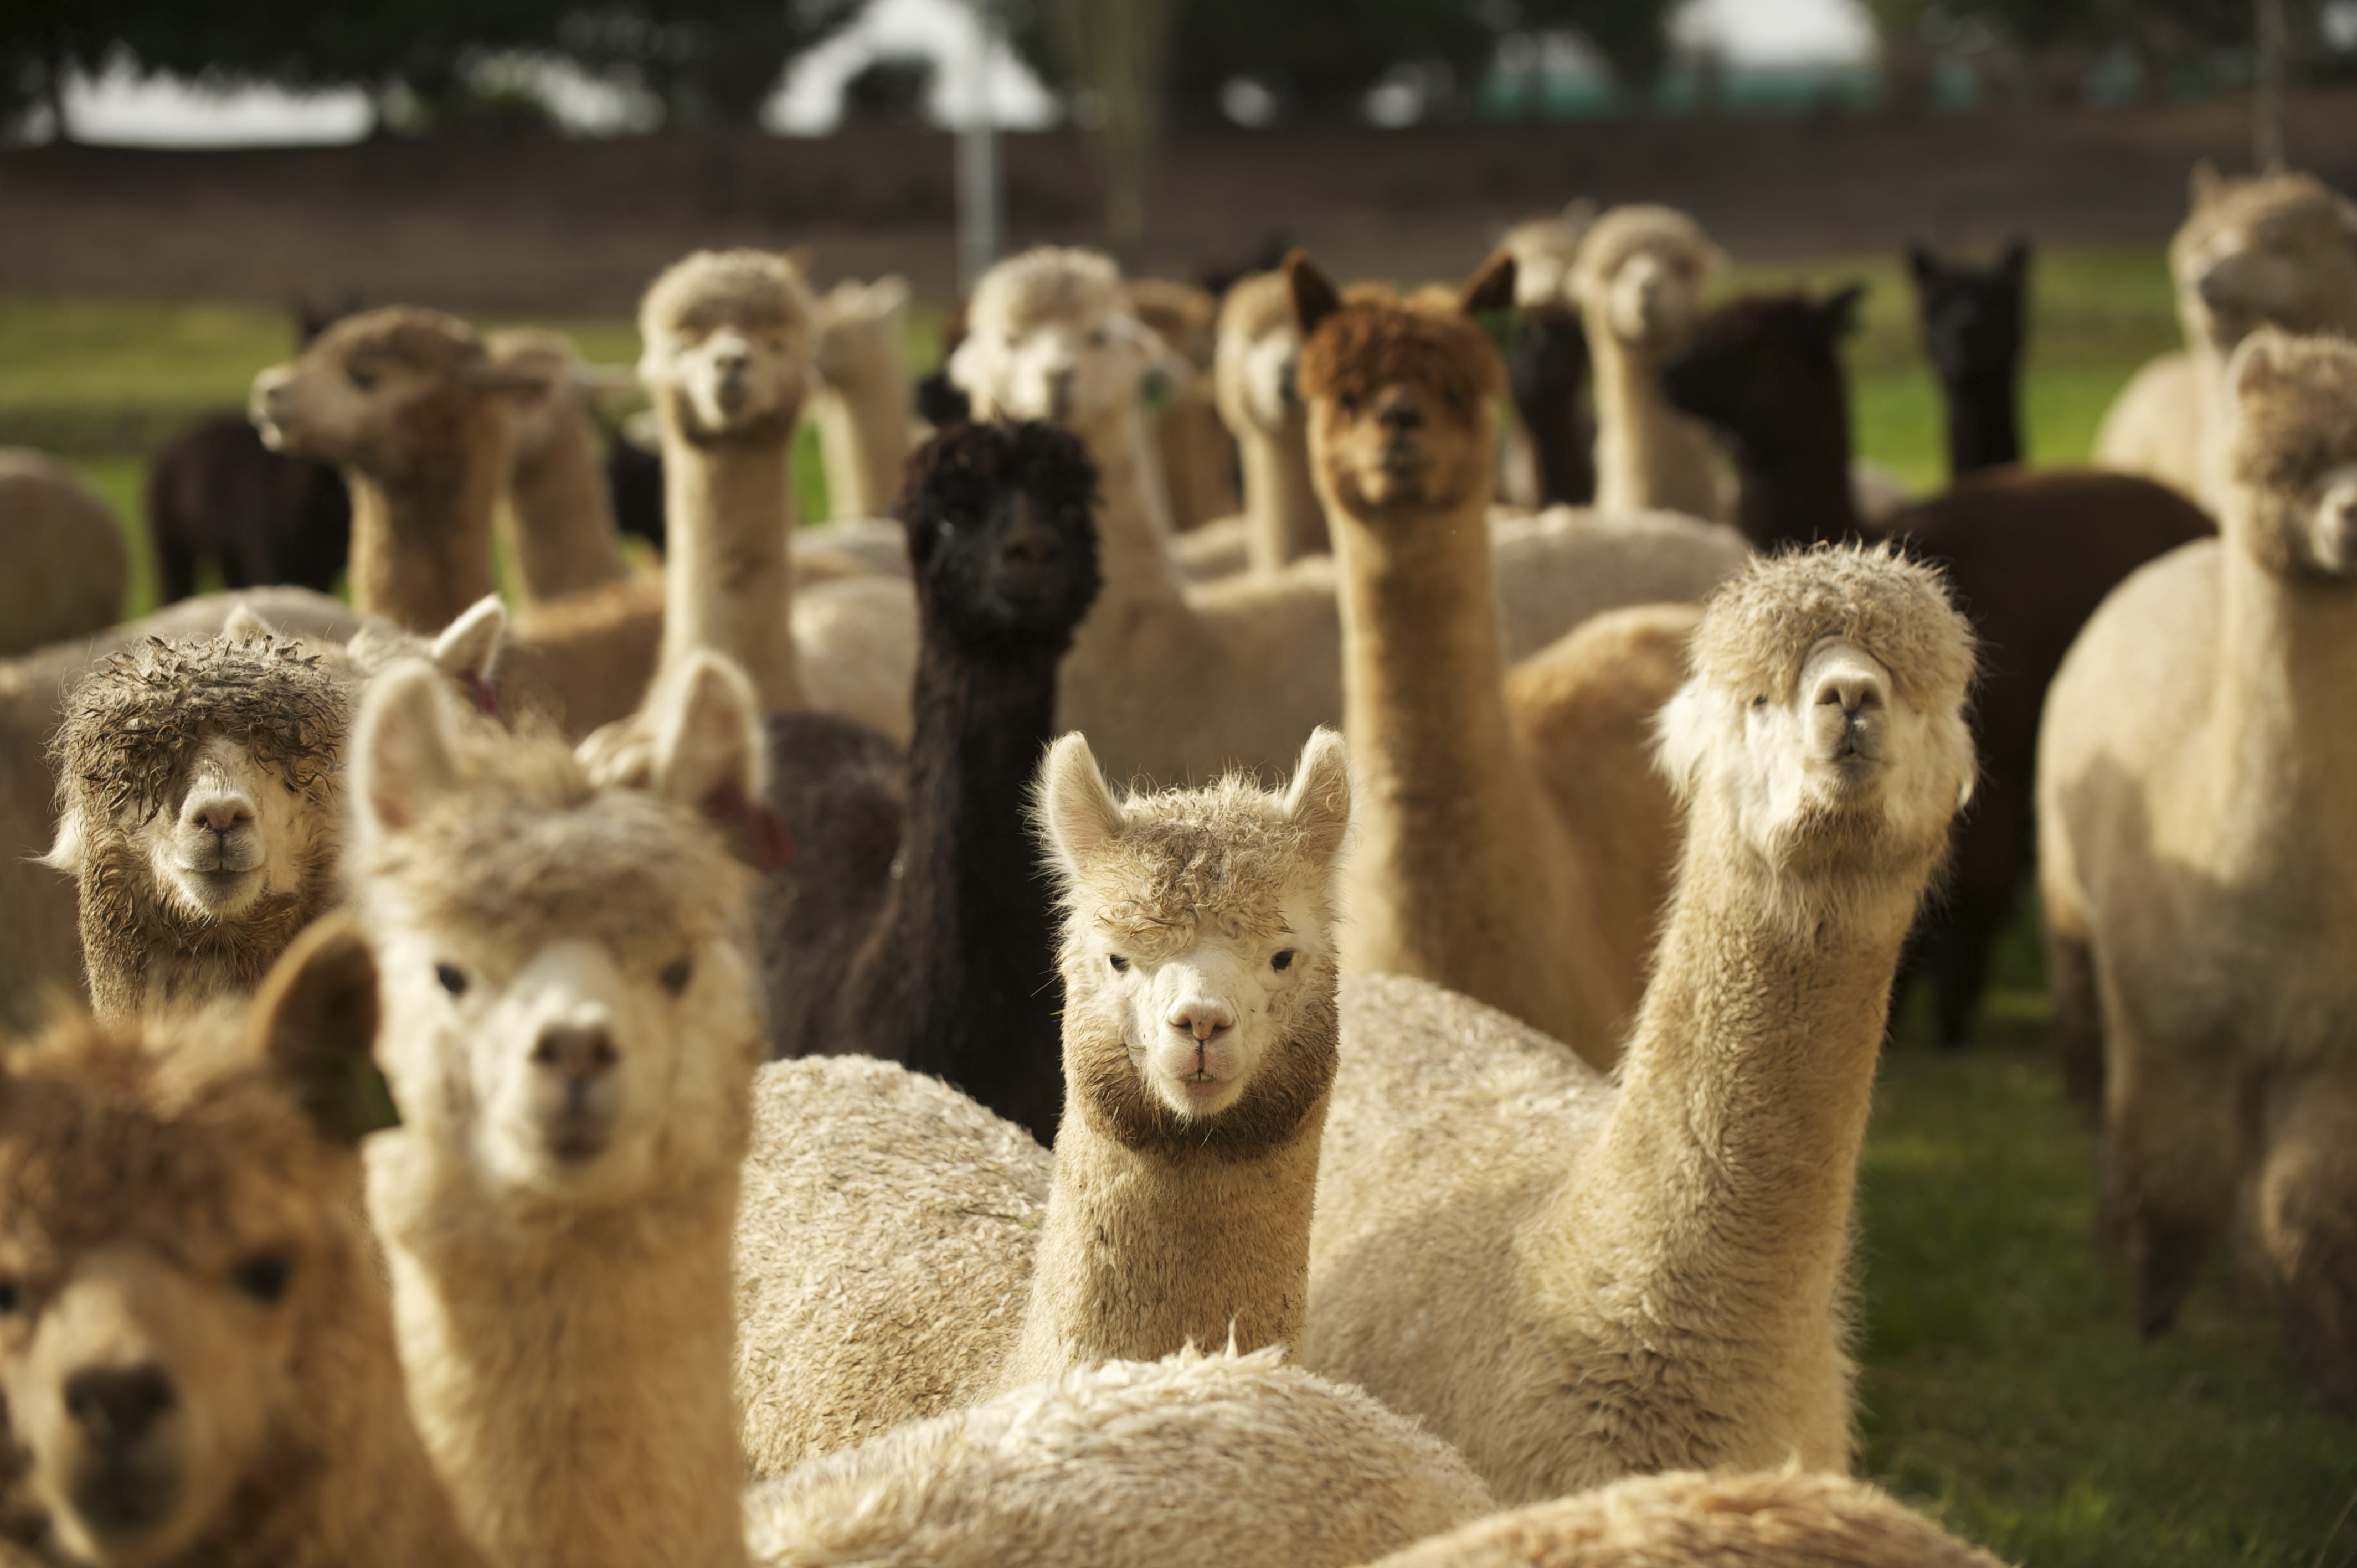 Alpacas at The Alpaca Group in Ridgefield are curious about humans, if shy about coming close, and some will get a chance to see lots of people at Alpacapalooza this weekend.